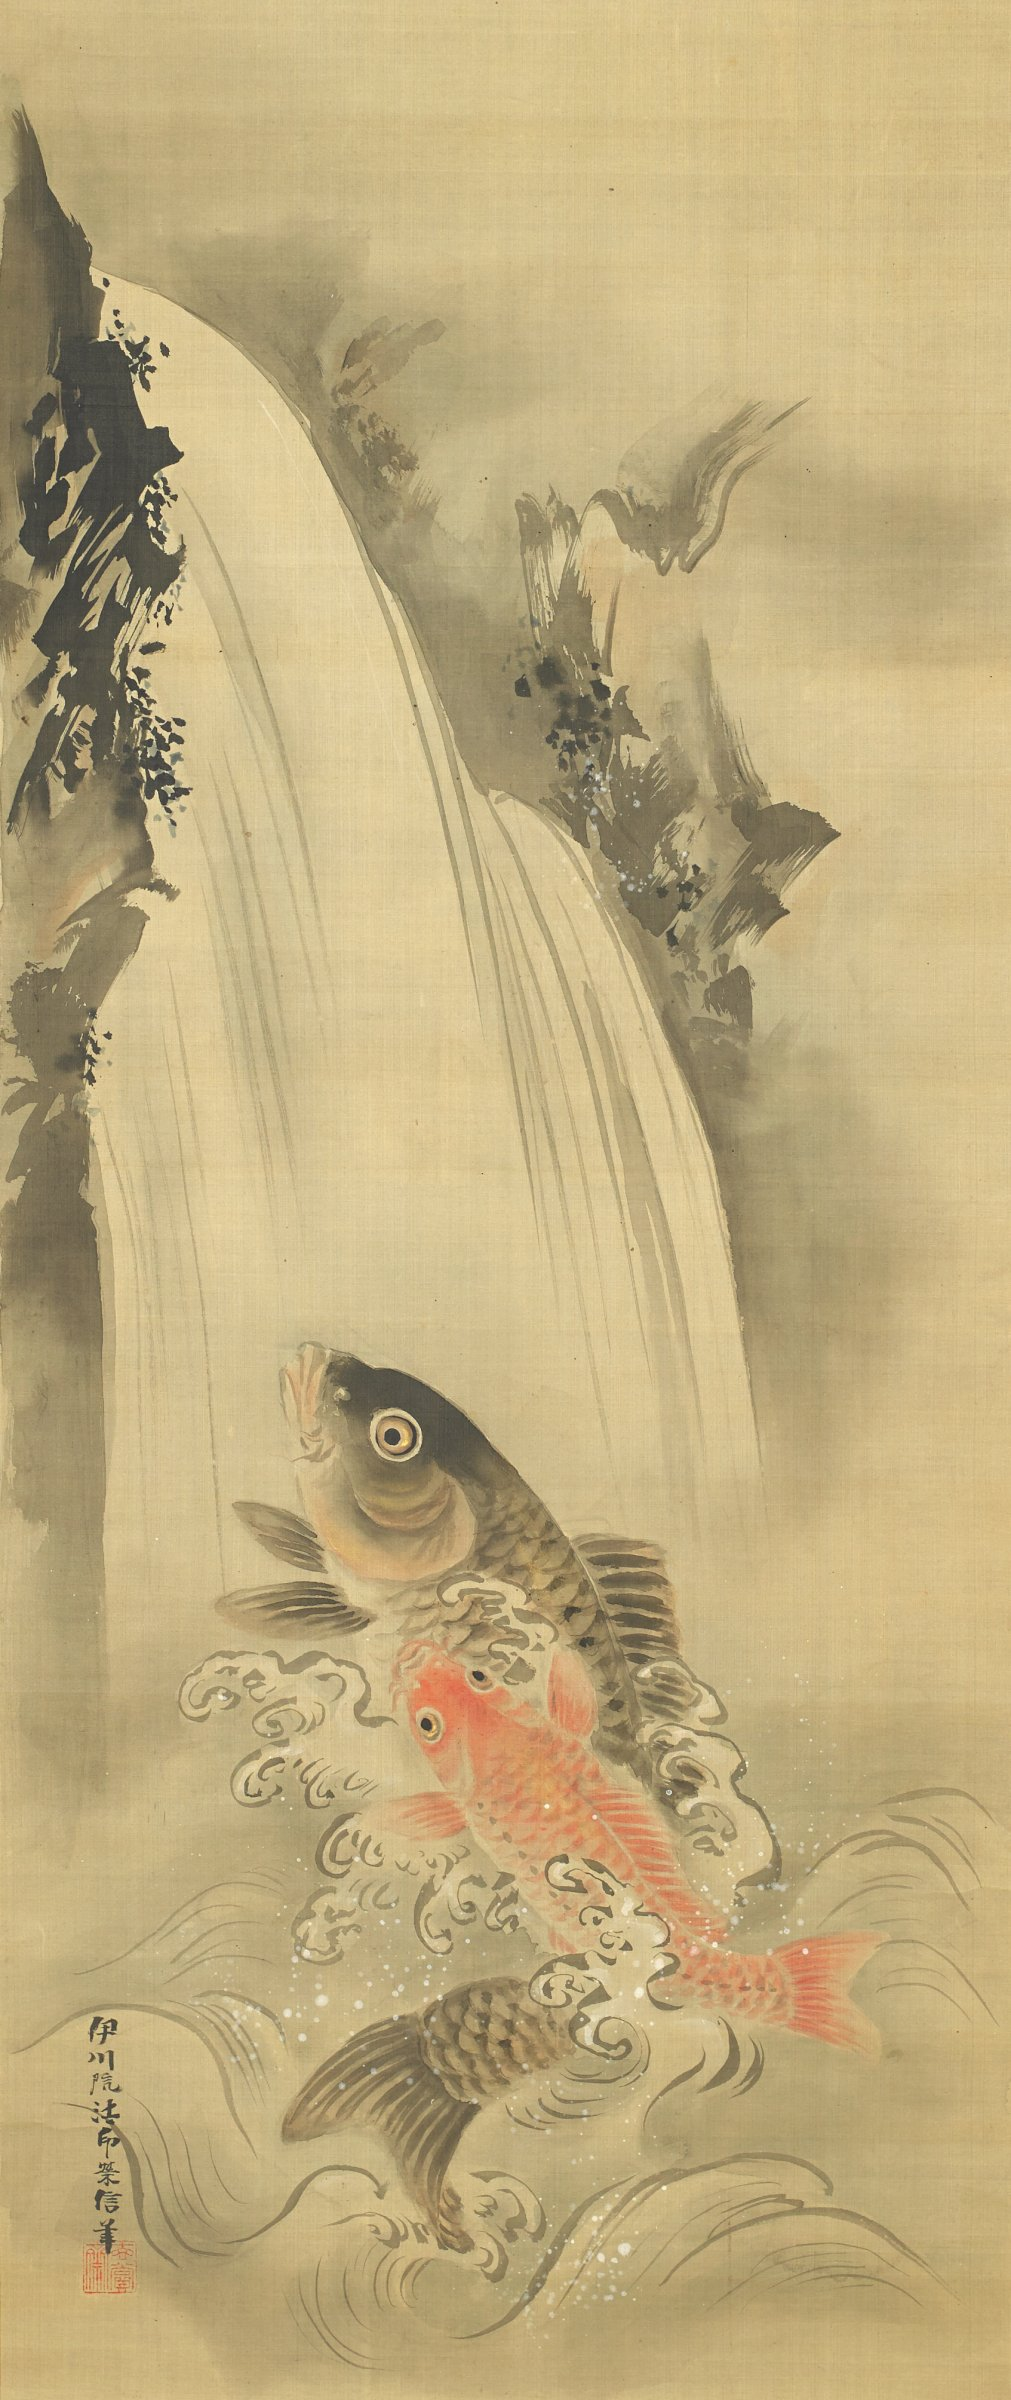 One of a pair of hanging scrolls (.1) female with young carp, to be hung on left. Companion scroll is (.2) male carp, to be hung on right.